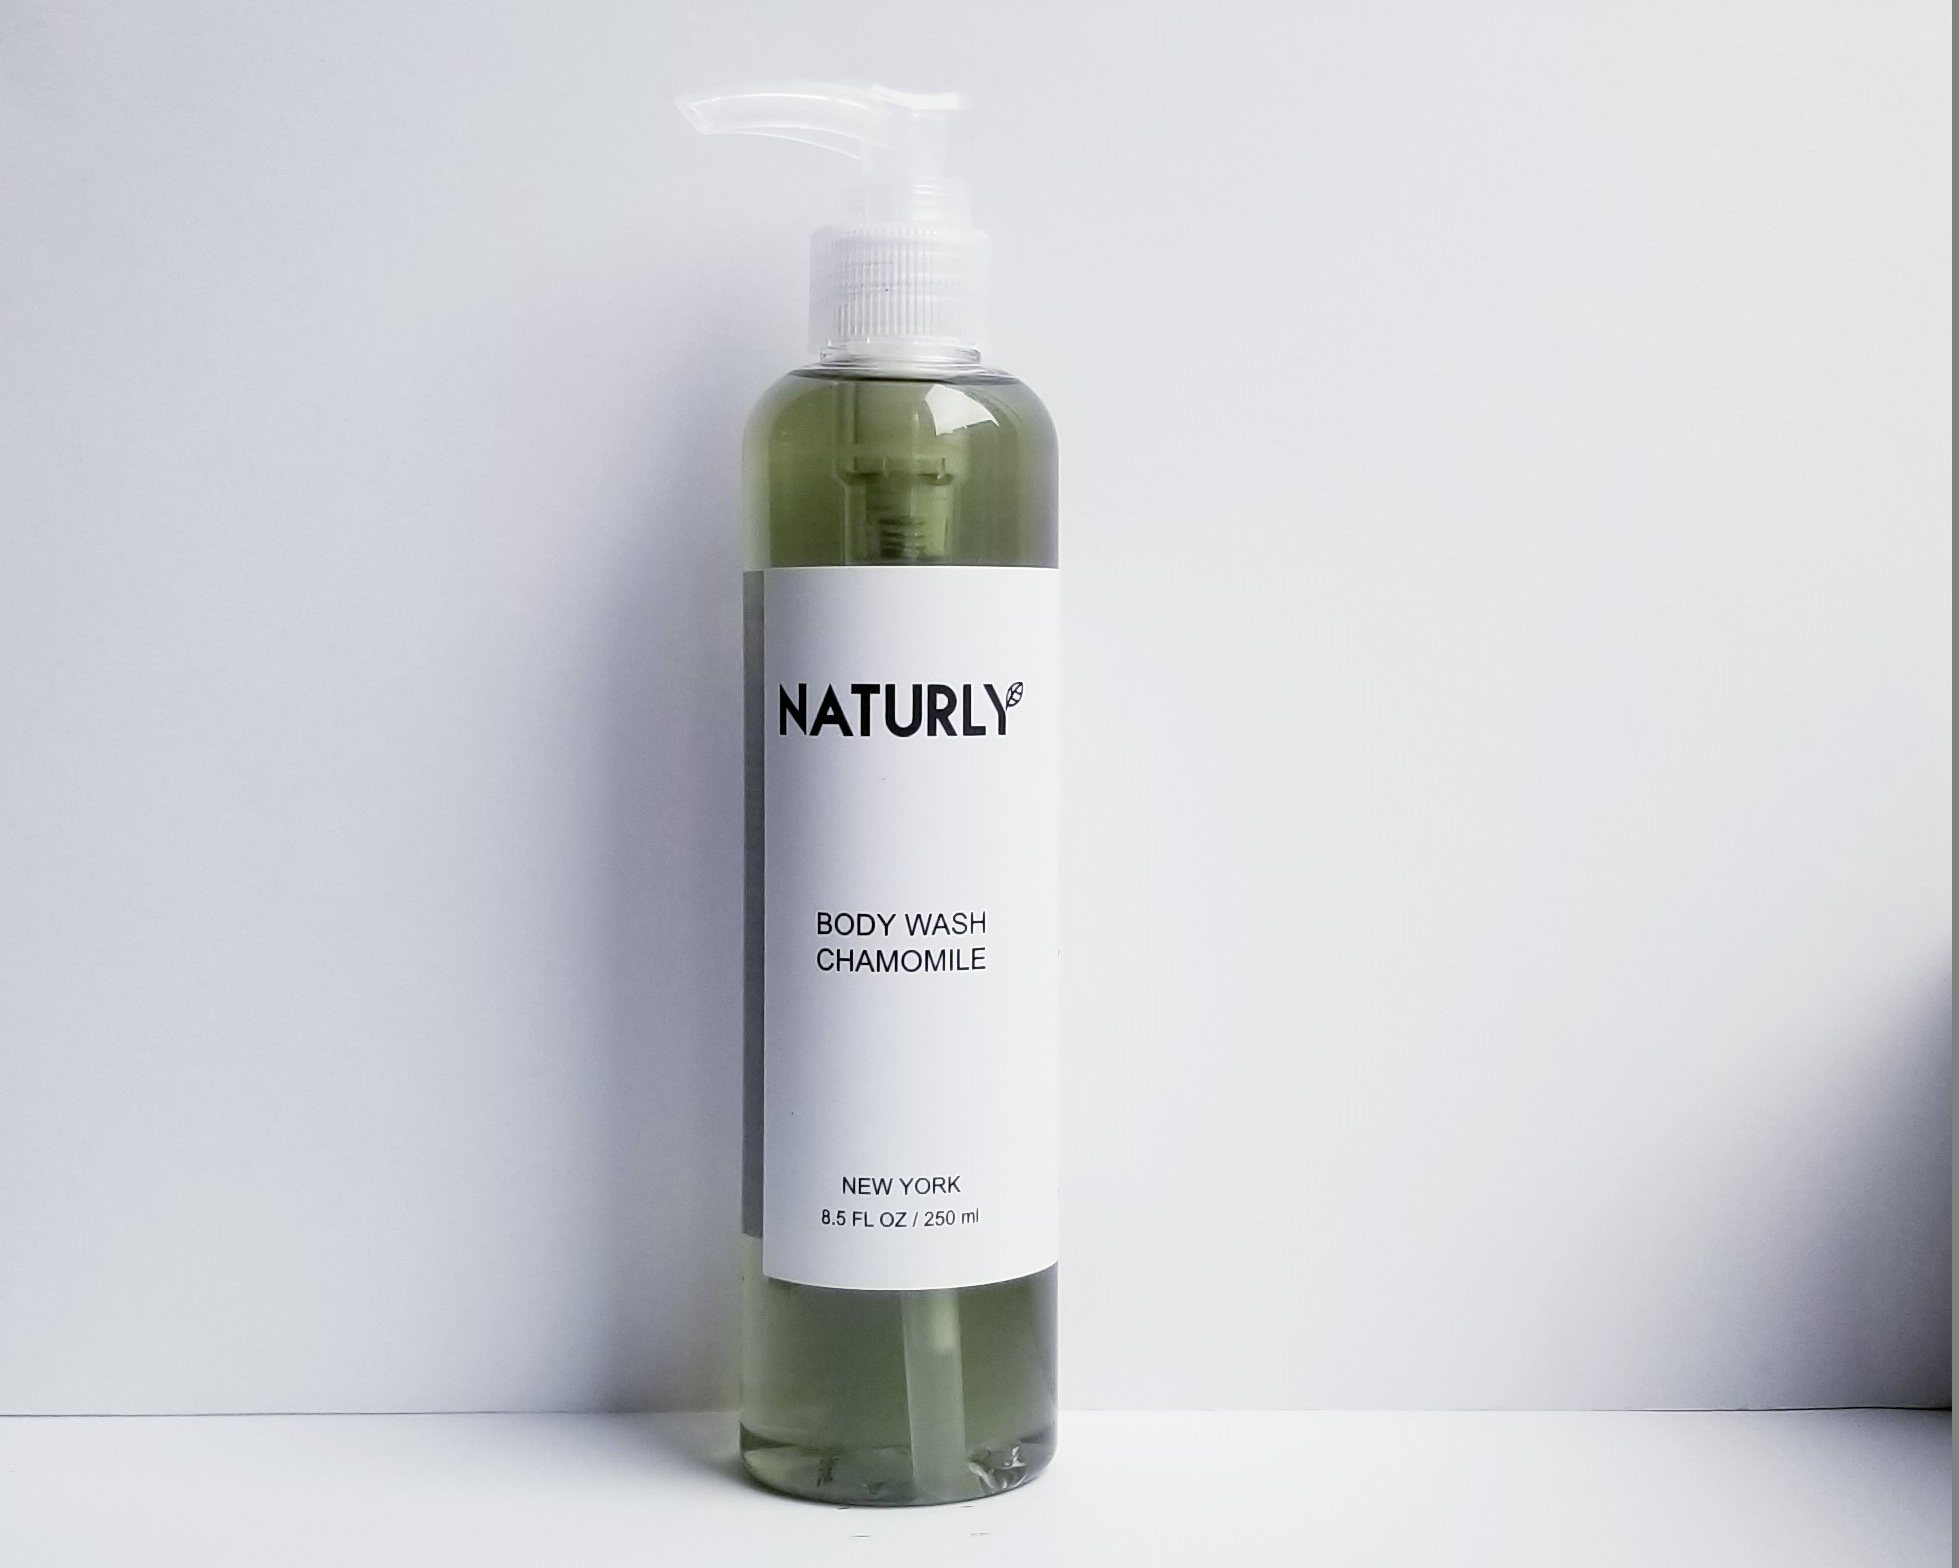 Body Wash with chamomile & lavendar oils; anti-oxidant chlorophyl extract - $24